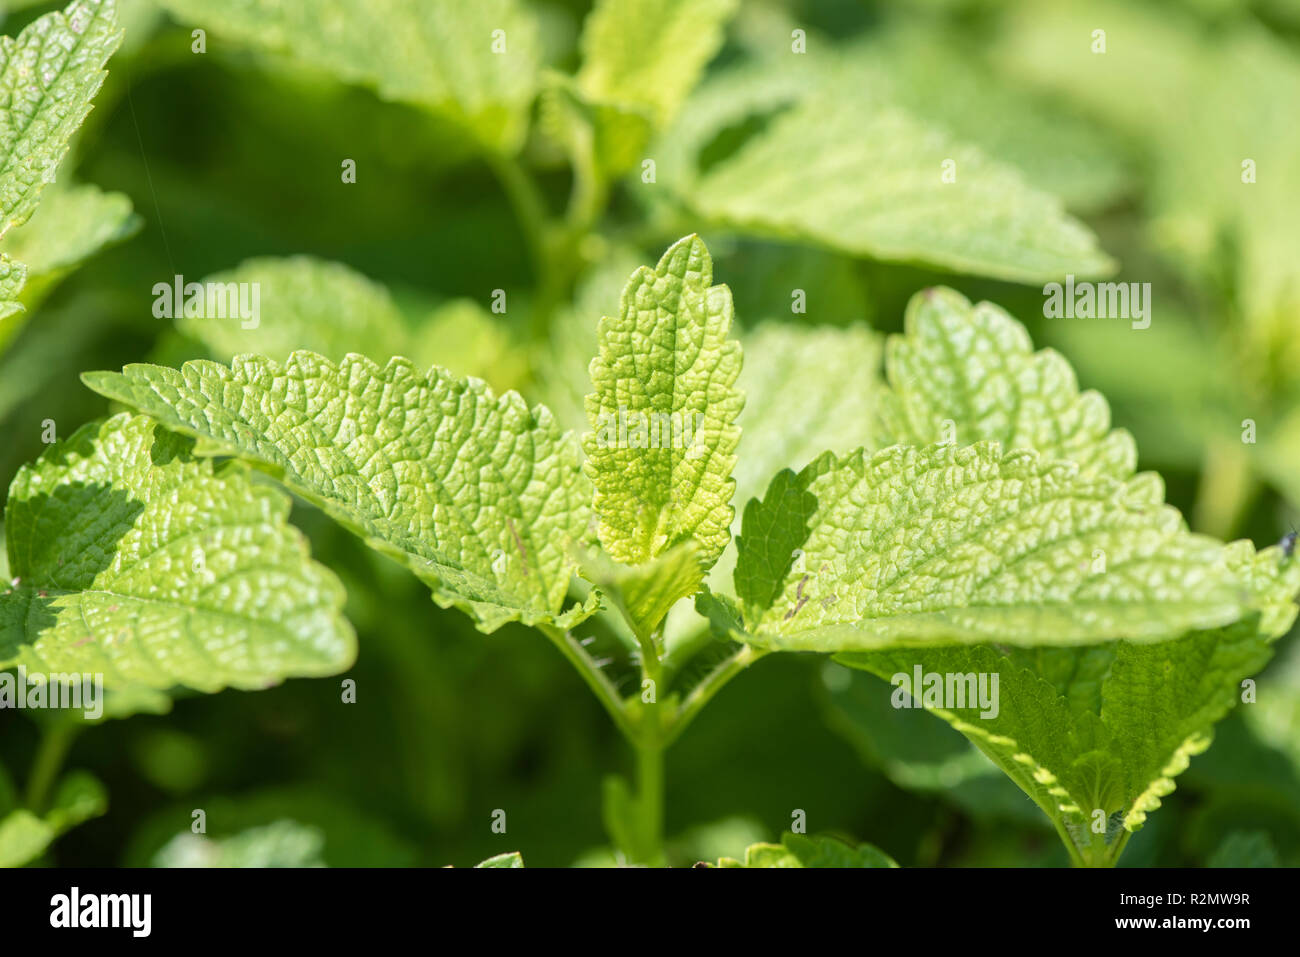 Herbal Medicine Stock Photos & Herbal Medicine Stock Images